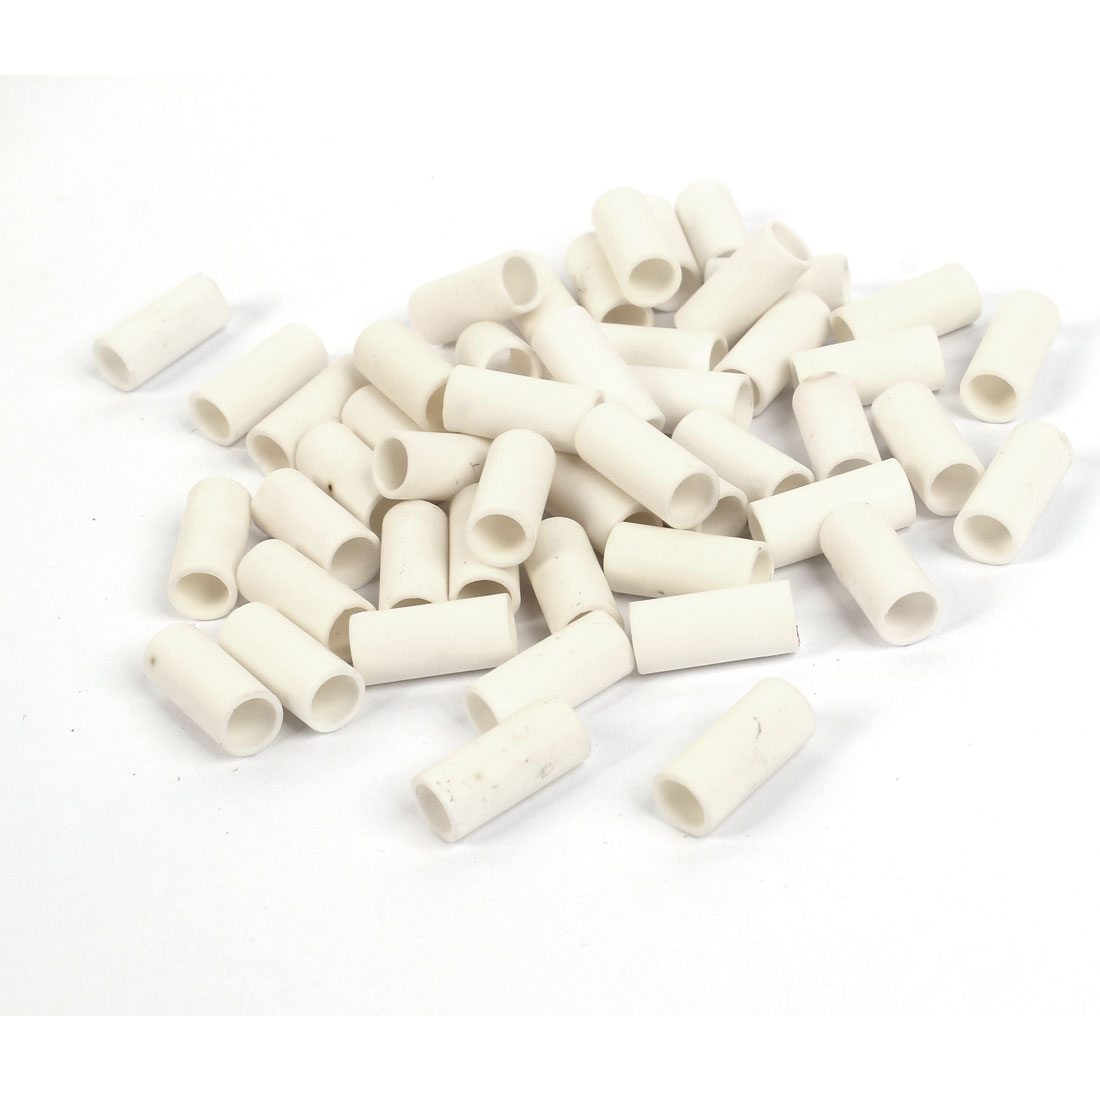 50 Pcs Electric Wiring Ceramic Insulation Pipe Tube White 8mmx6mmx17.5mm